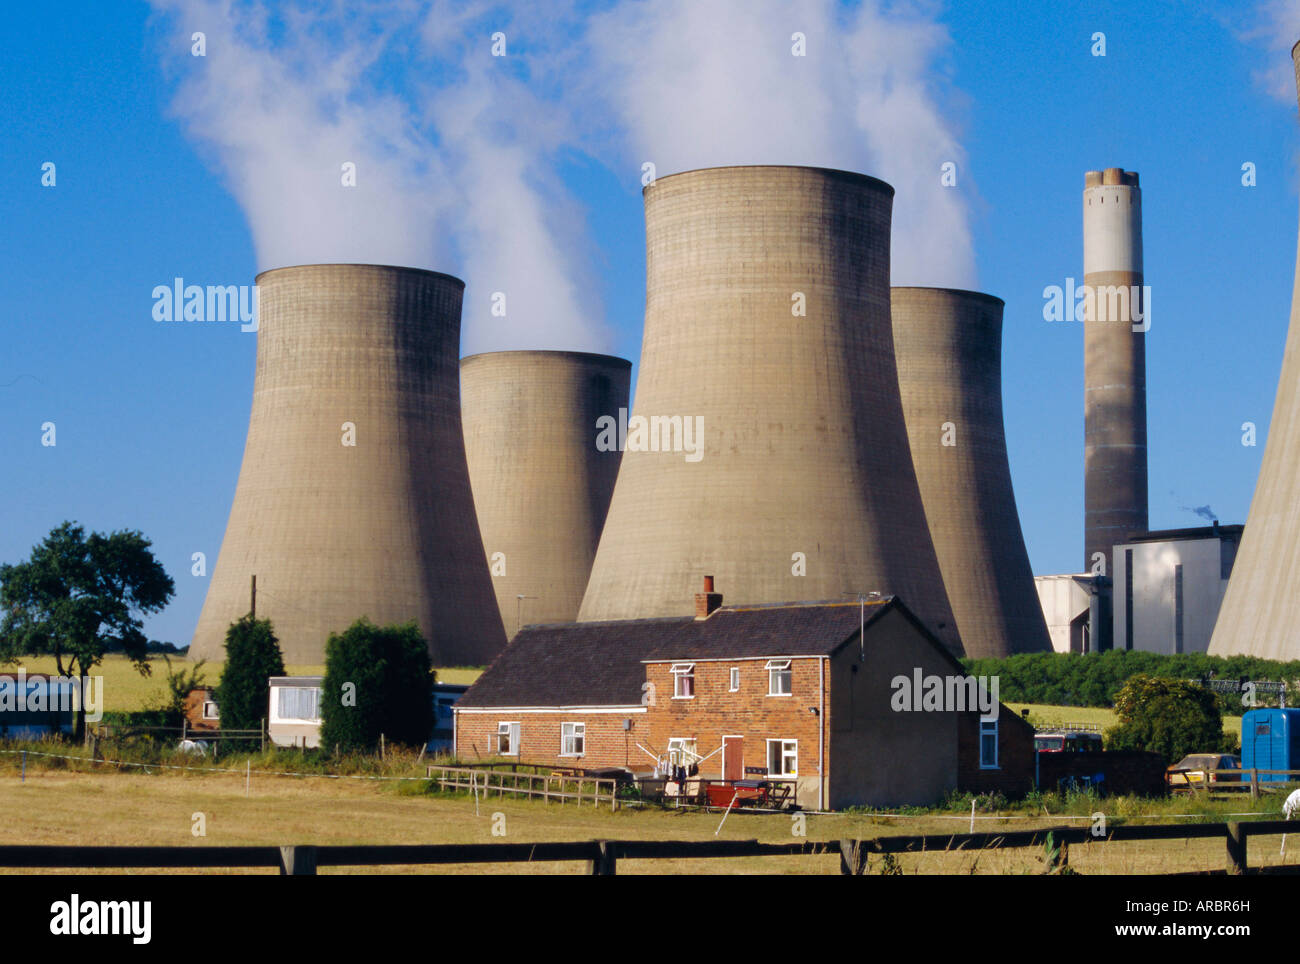 Cooling towers, Radcliffe on Soar Power Station, domestic housing in foreground, Trent Valley, Nottinghamshire, - Stock Image